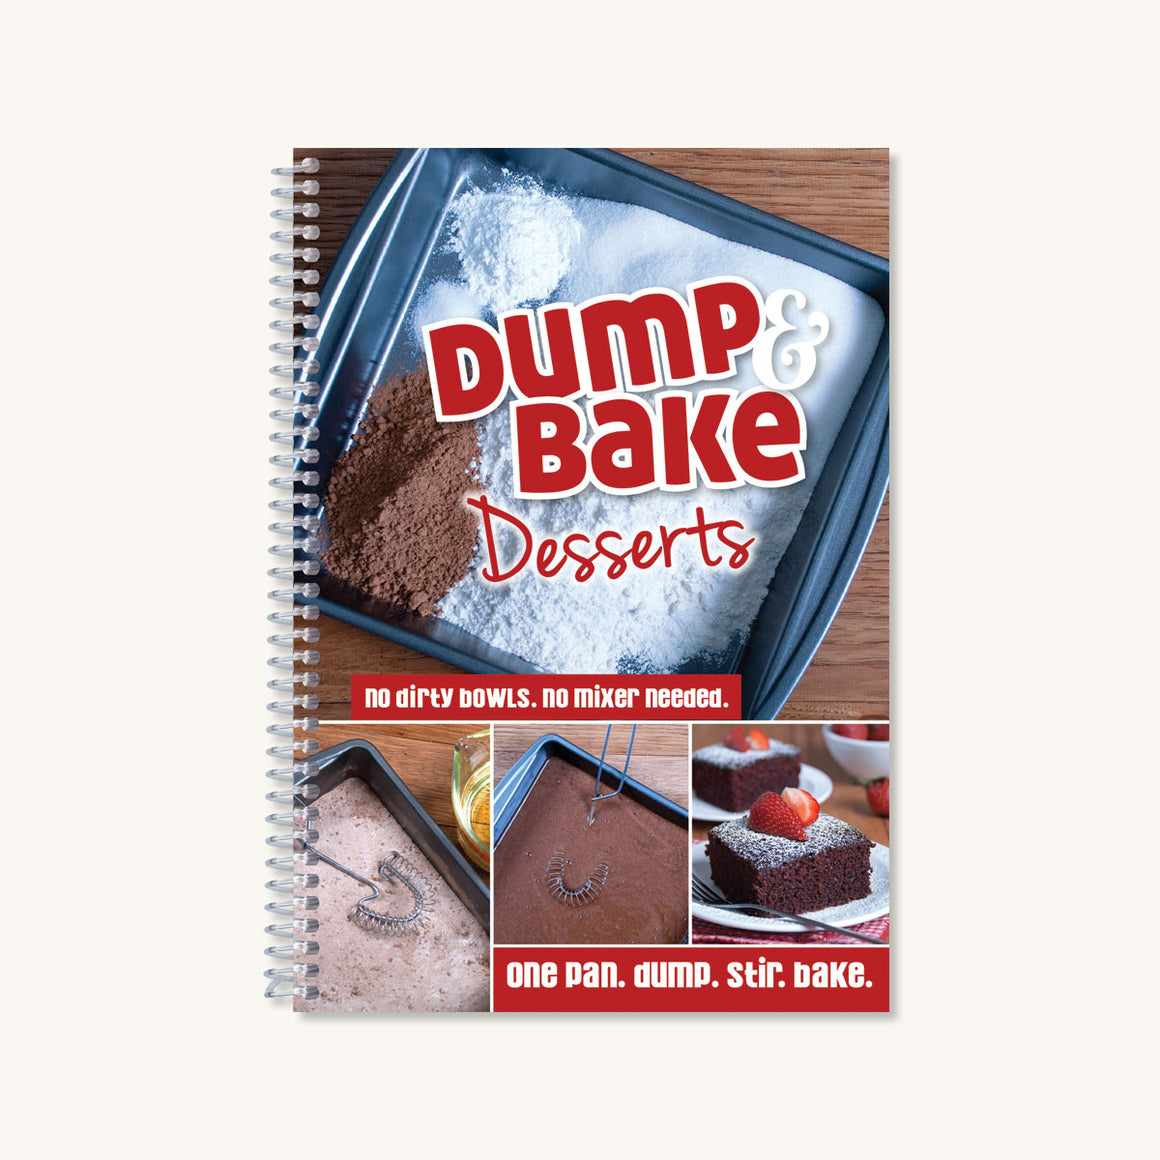 Dump & Bake Desserts Cookbook